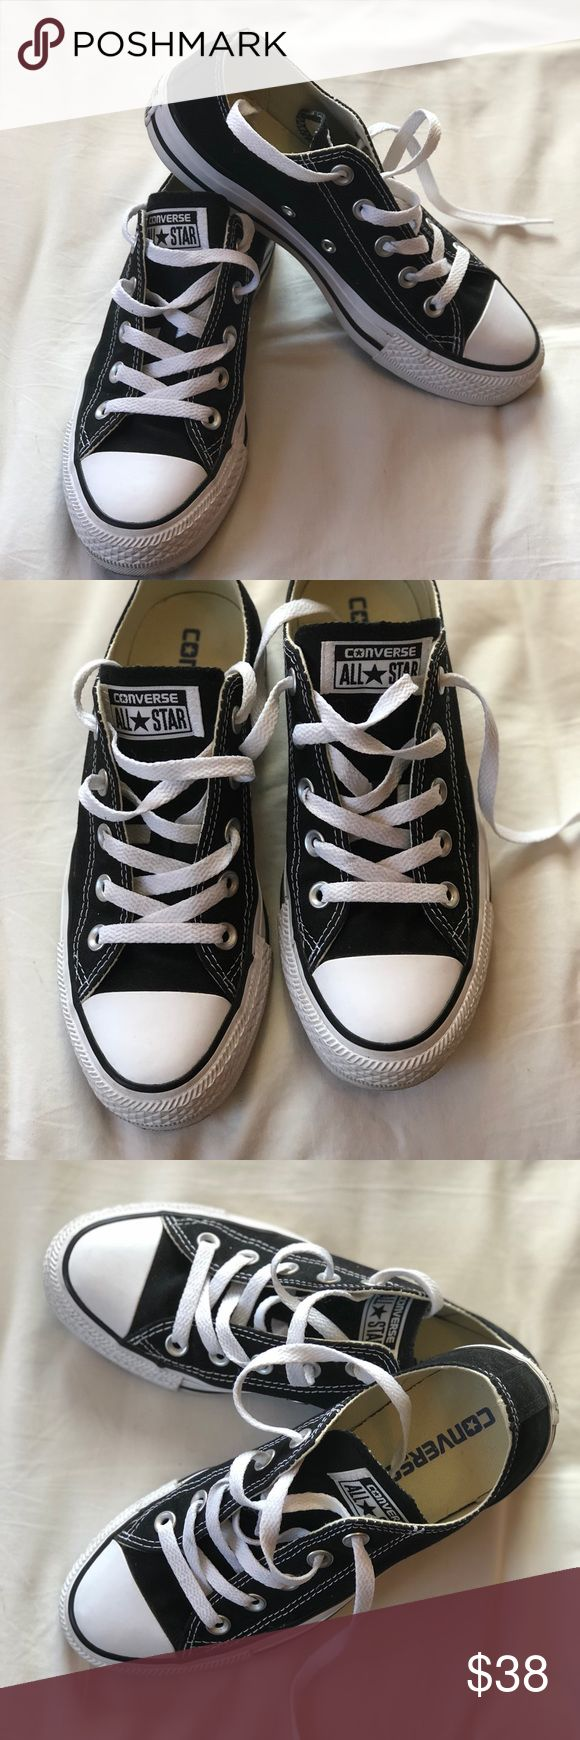 Black Converse All-Star low top sneakers Black and white converse low tops. Only worn once, and super clean! Women's size 6/men's 4 Converse Shoes Sneakers